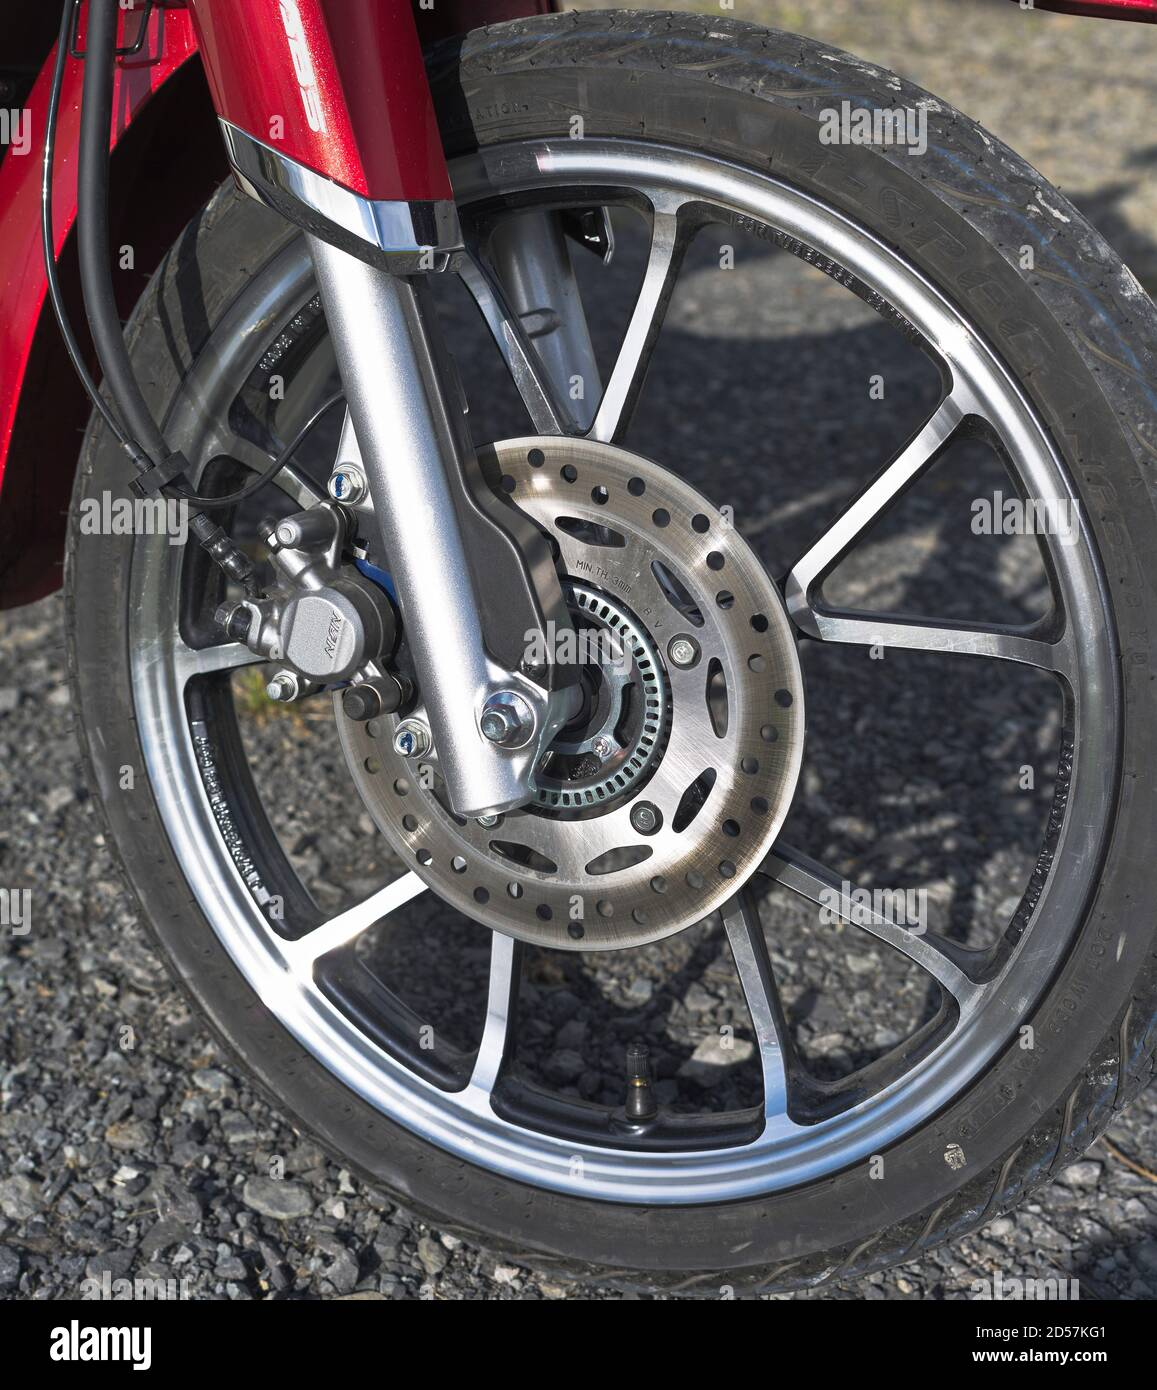 Motorbike Front Disc Brakes High Resolution Stock Photography And Images Alamy